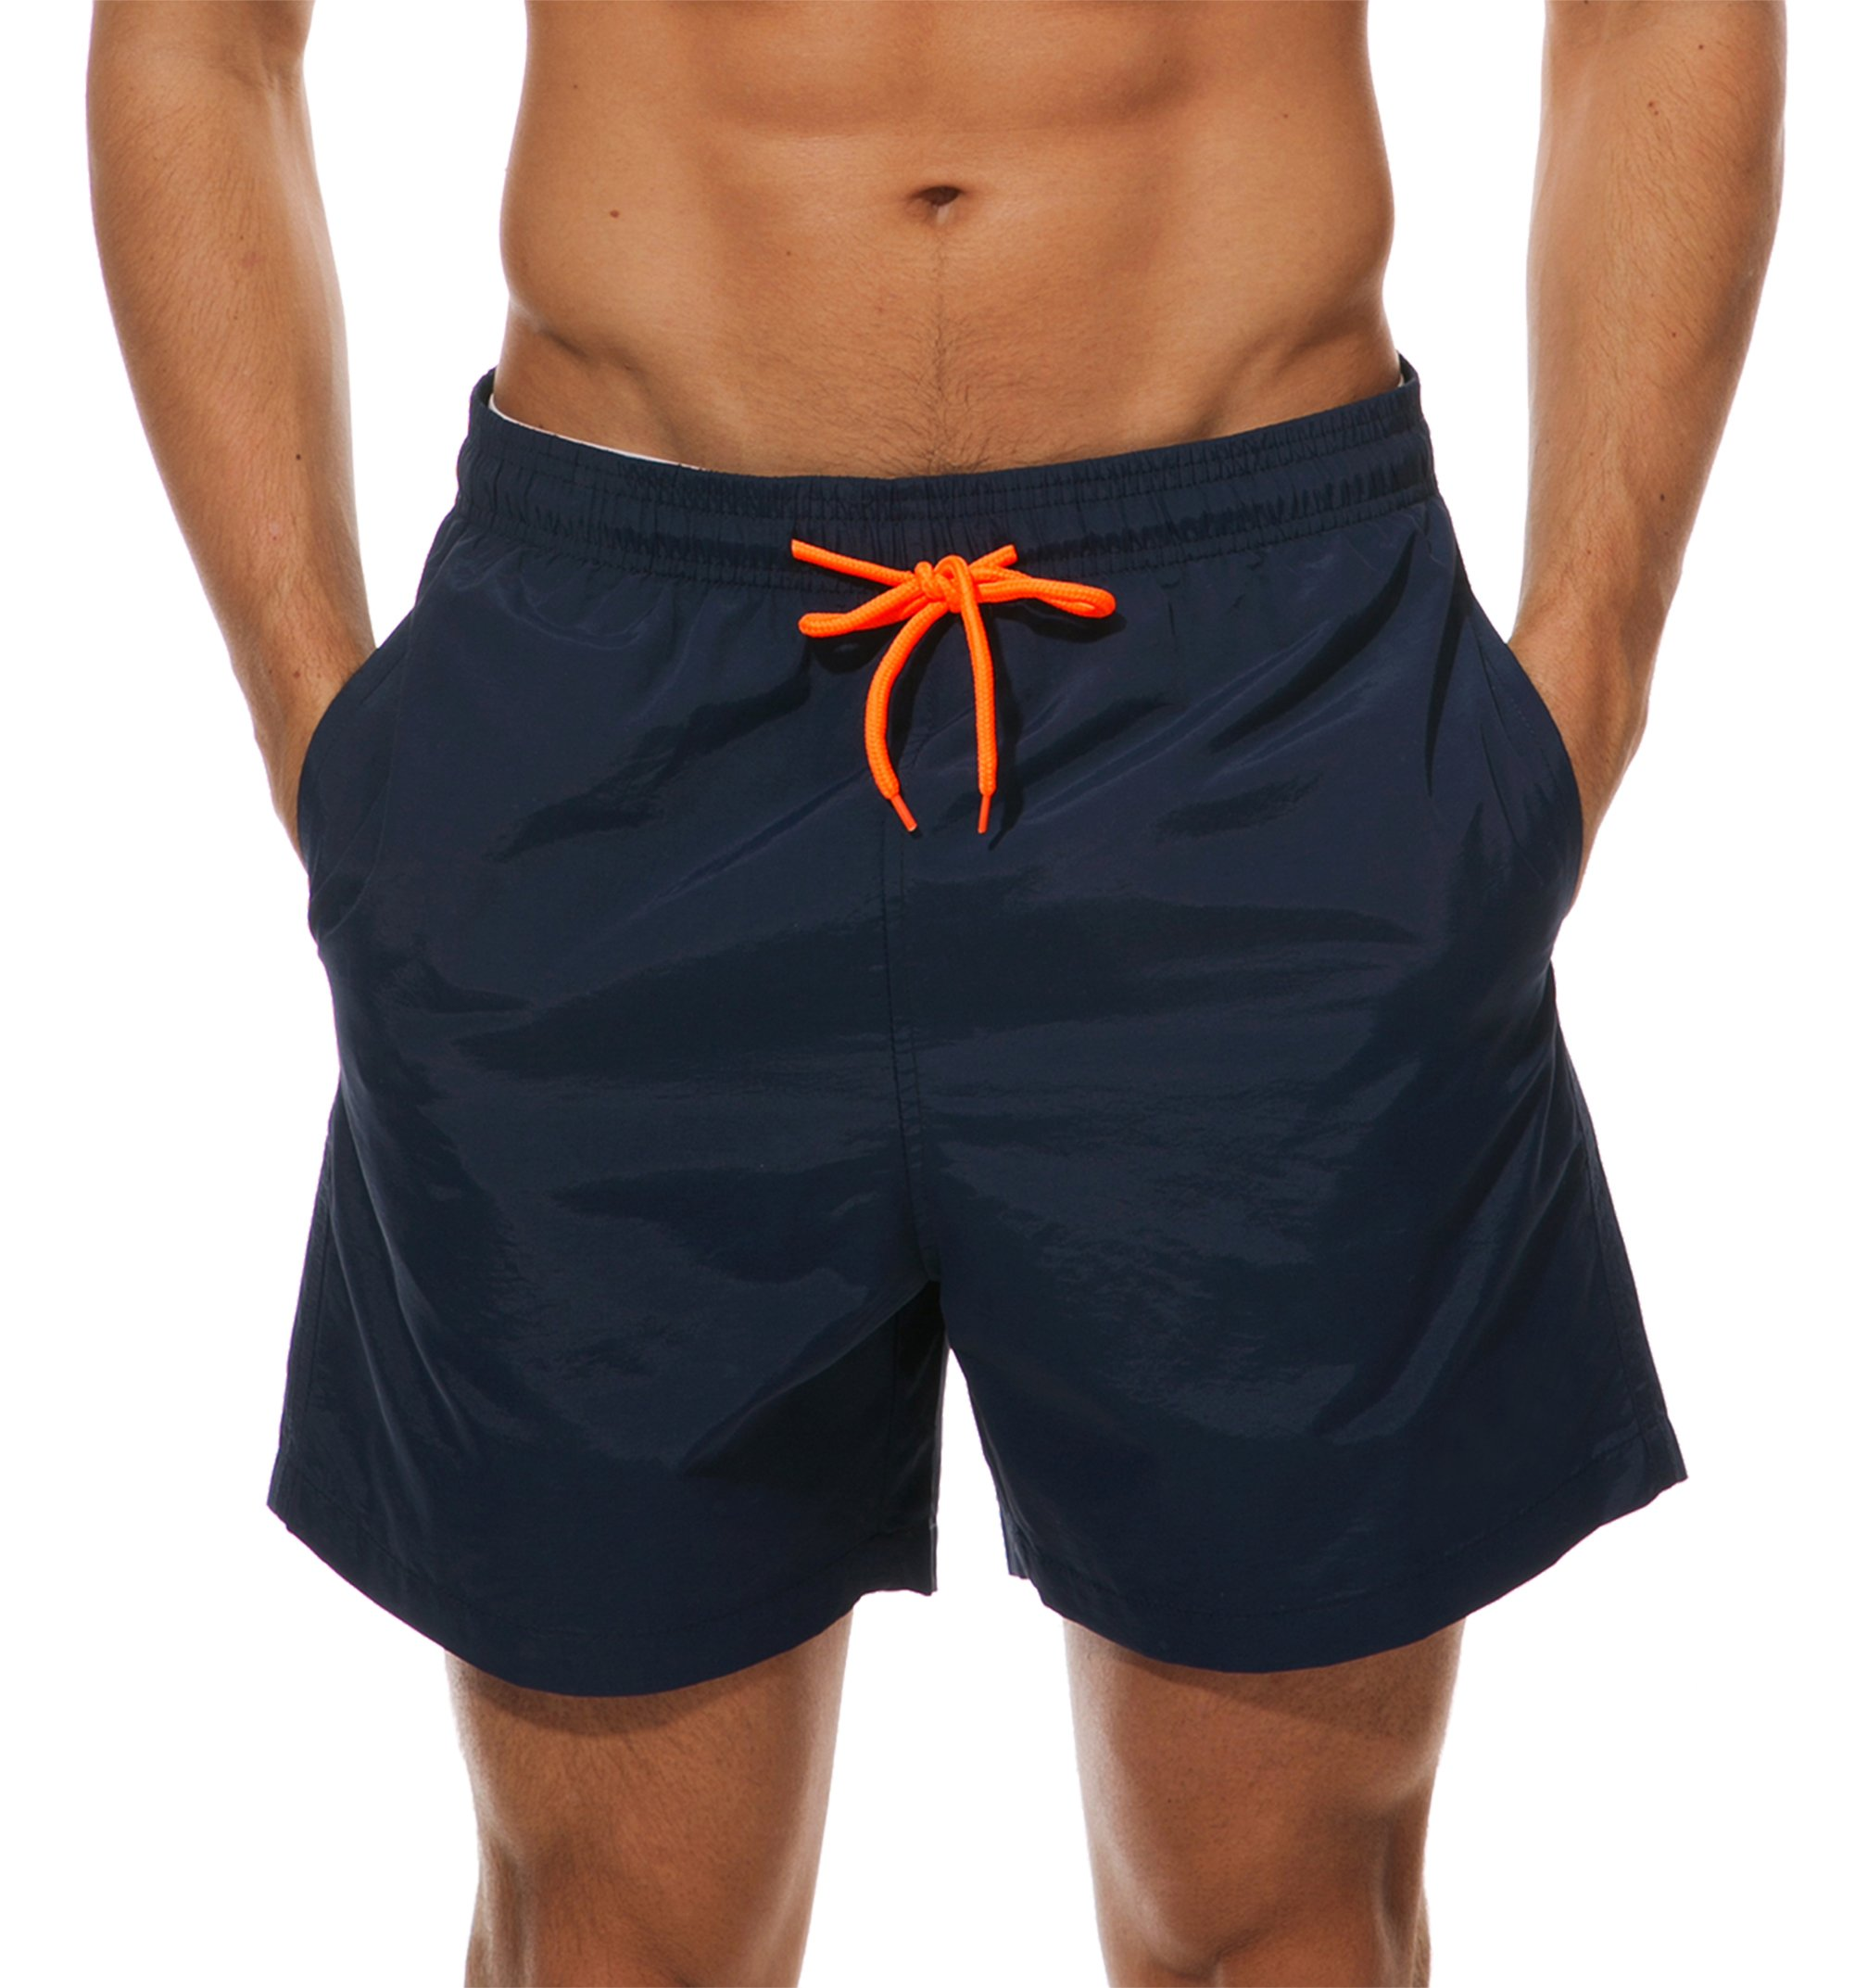 WENER Men's Short Swim Trunks,Best Board Shorts Sports Running Swimming Beach Surfing,Quick Dry Breathable Mesh Lining (Navy Blue, US Size Large (Fits Waist:34.6''-38.5'',Tag XXL))